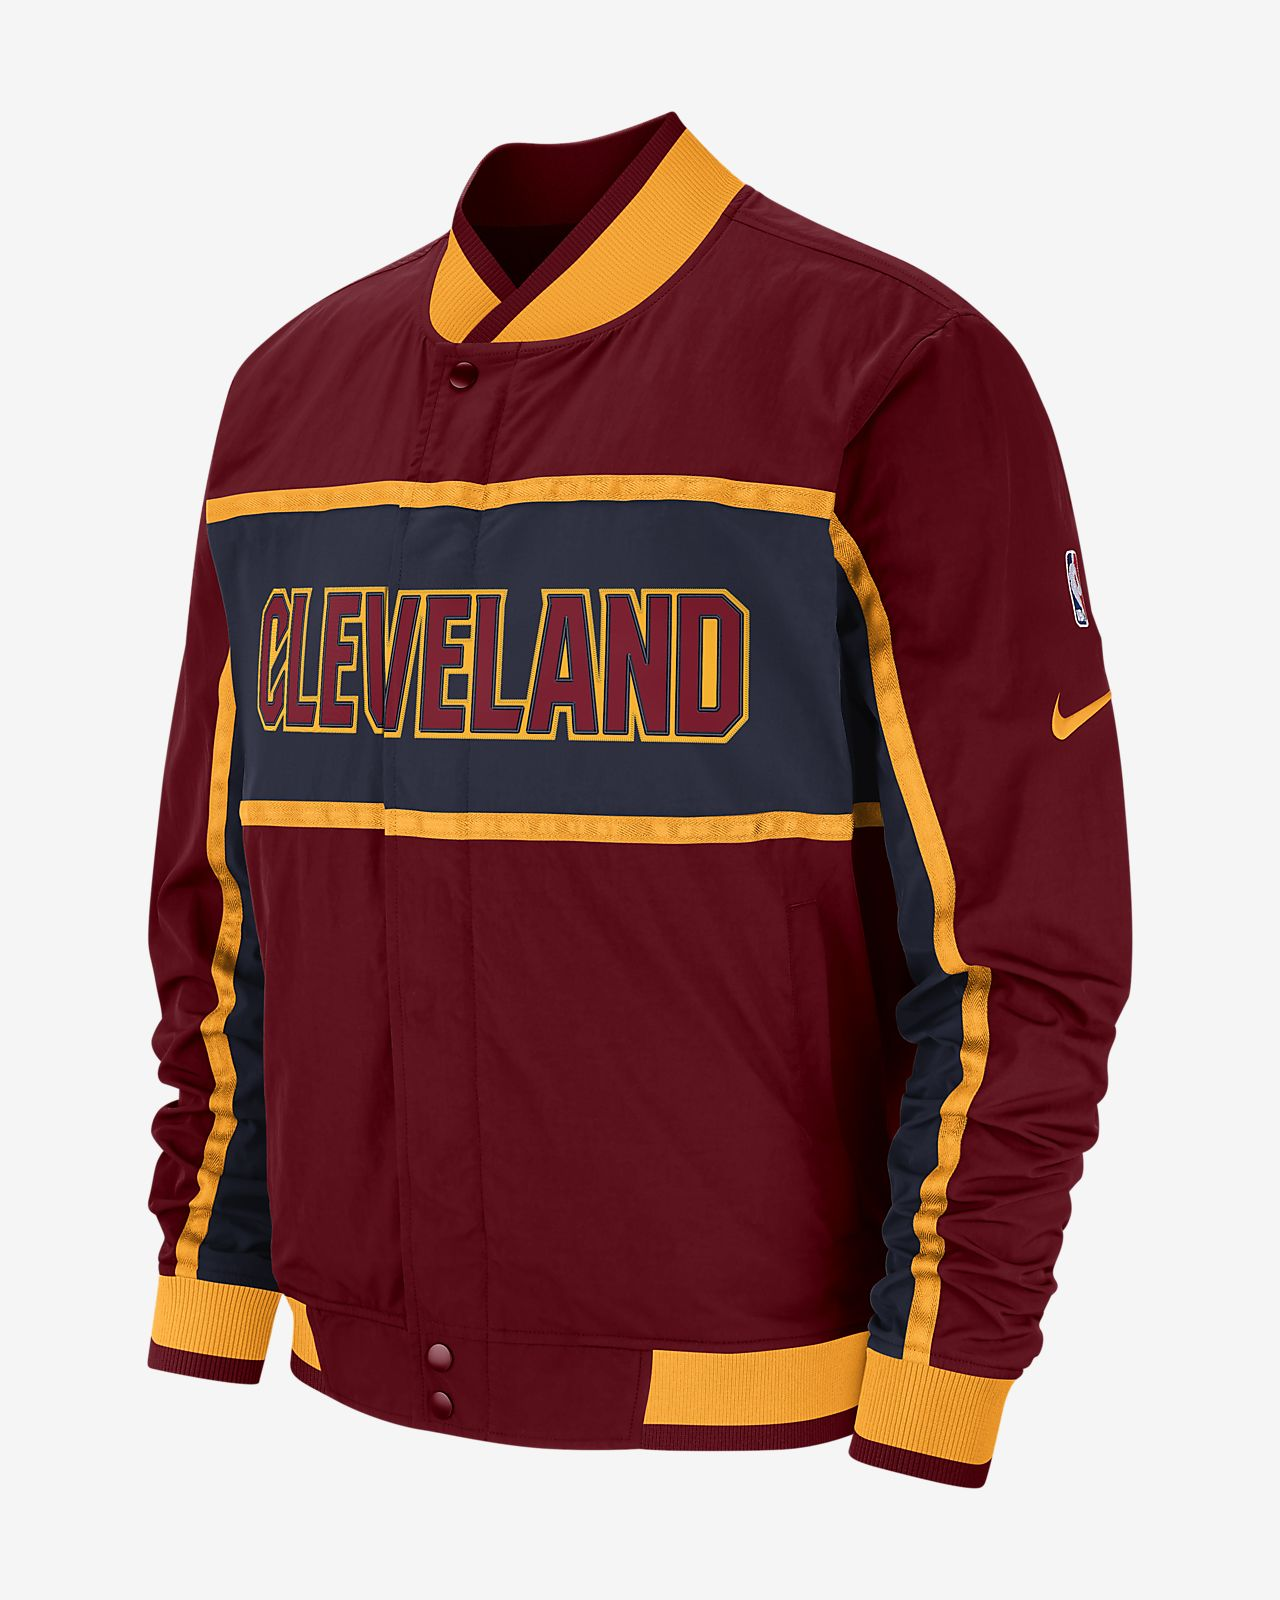 e67d3c857 Cleveland Cavaliers Nike Courtside Men s NBA Jacket. Nike.com GB